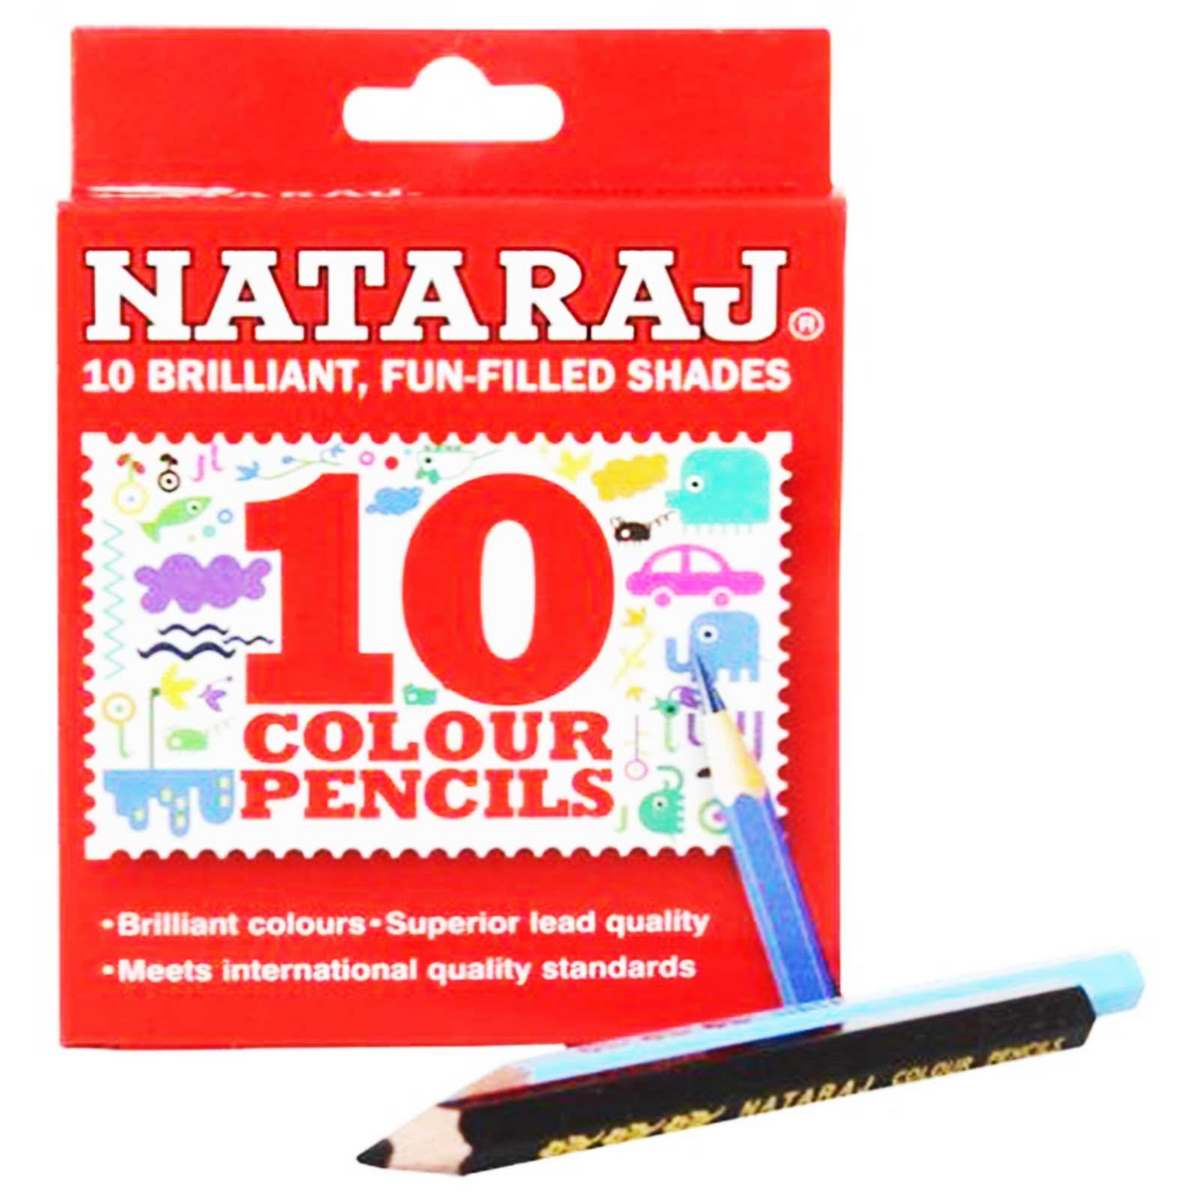 Nataraj Colour Pencils 201252001